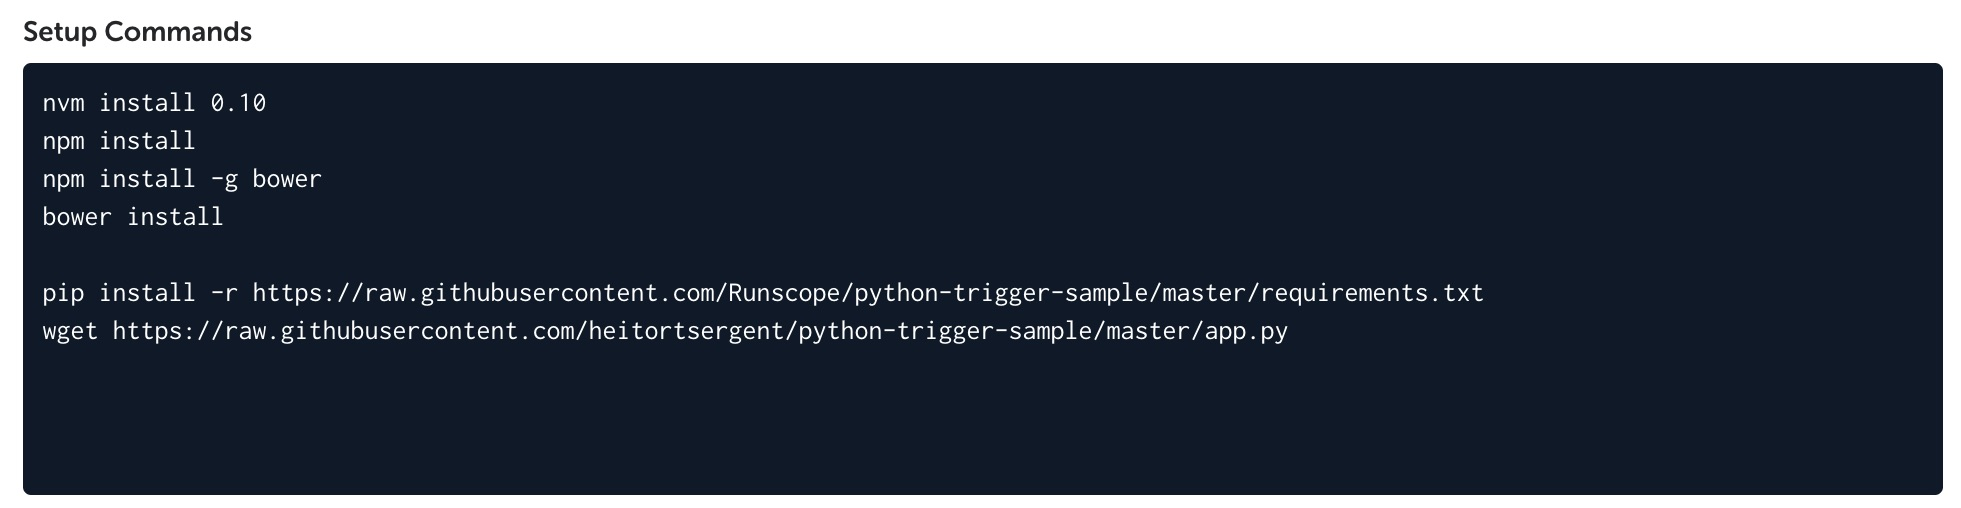 """A Codeship test project settings page, showing the """"Setup Commands"""" text box with the bash commands to install the script requirements and download the Python script"""